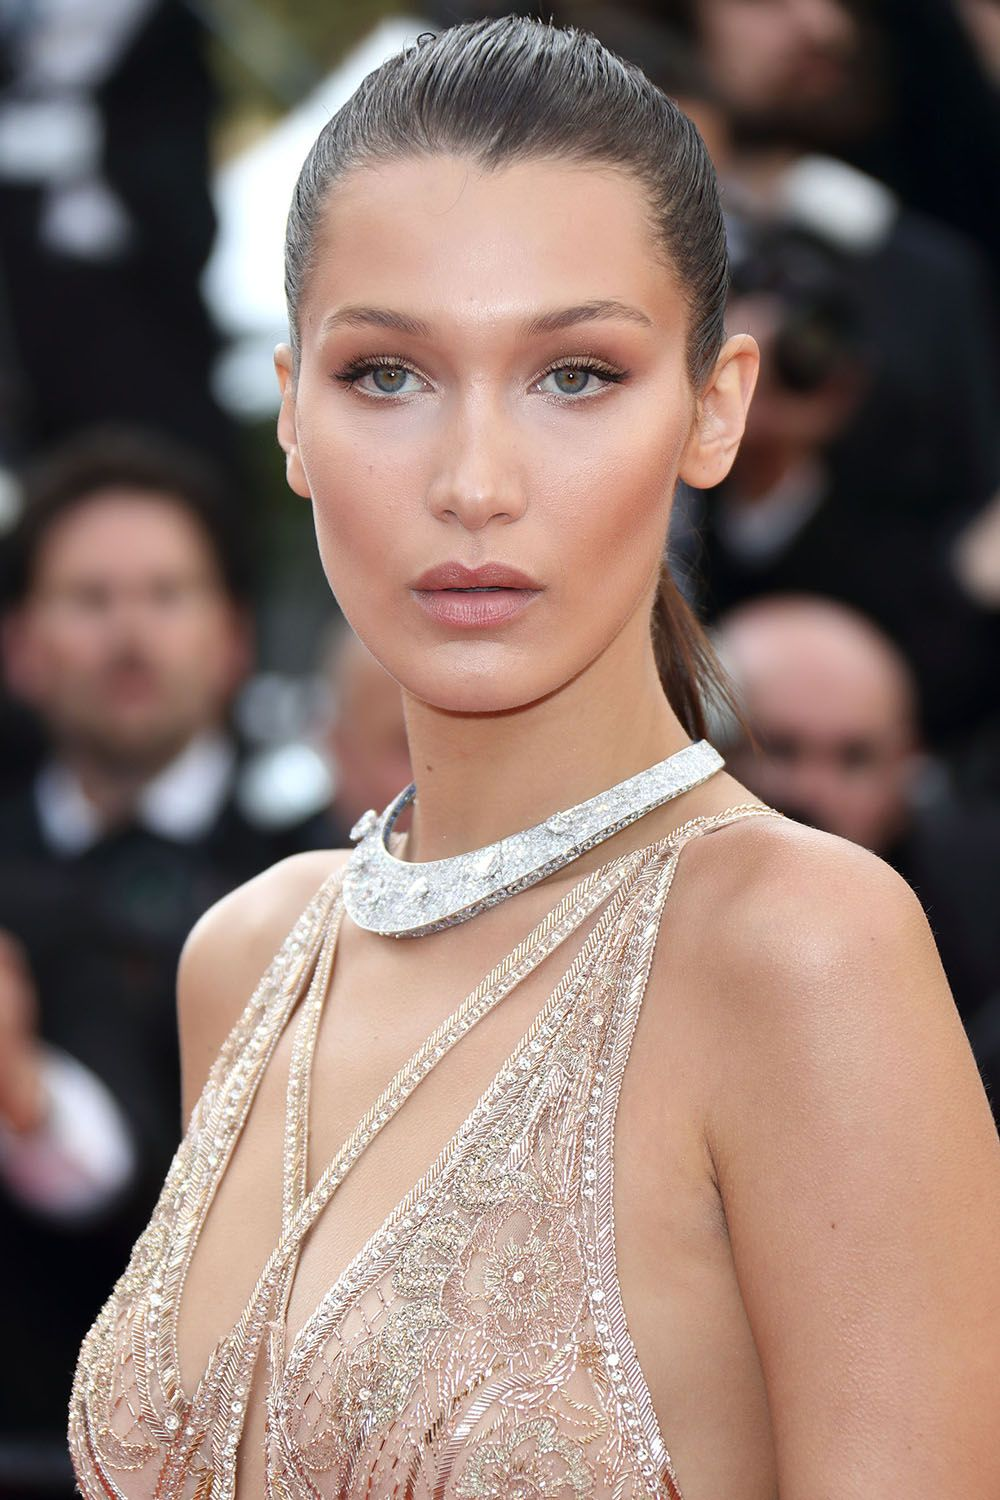 <p>Bella Hadid's rise to supermodel status has been happening for quite some time. But it wasn't until she stepped-out at the Cannes Film Festival, looking like a chiseled queen of contouring,thather title was cemented.</p>